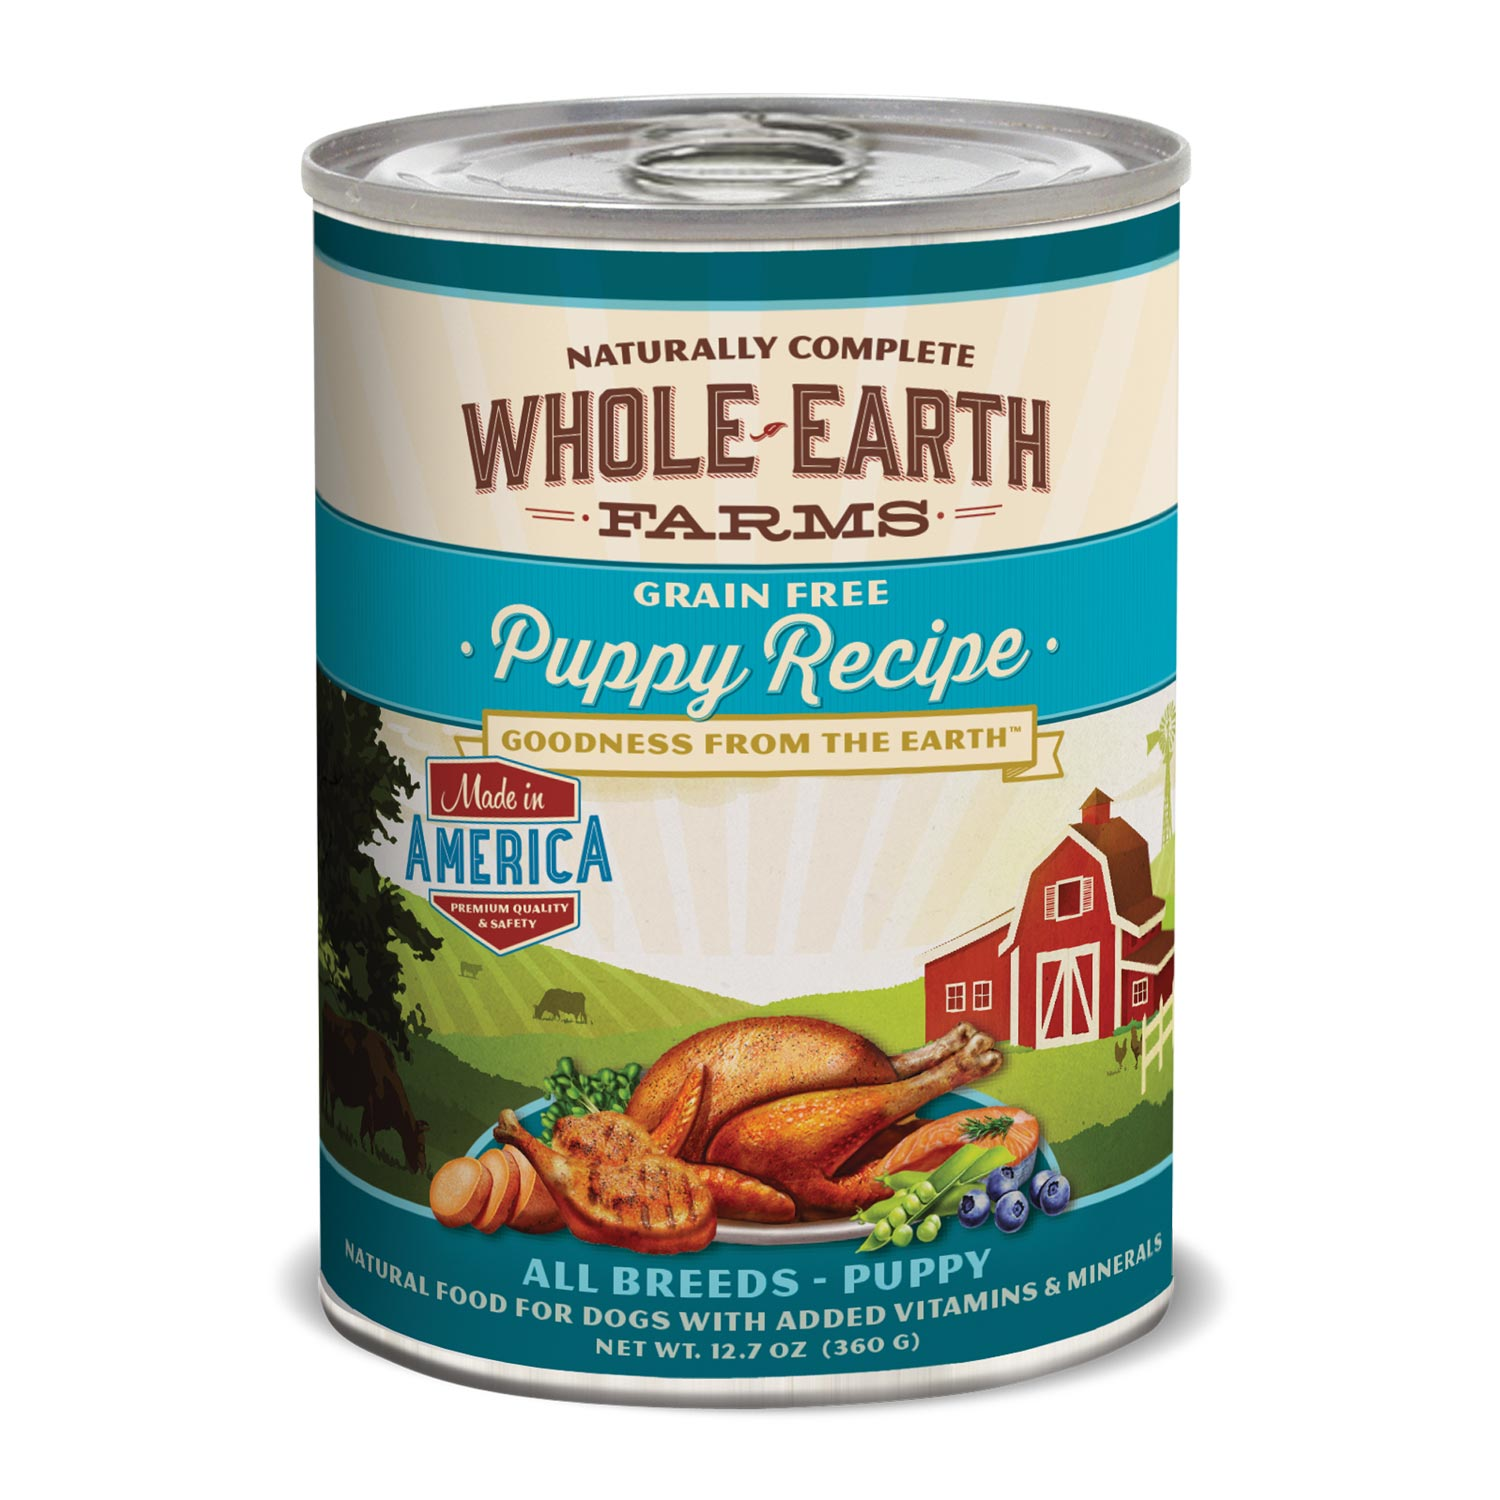 Whole Earth Farms Grain Free Puppy Canned Dog Food